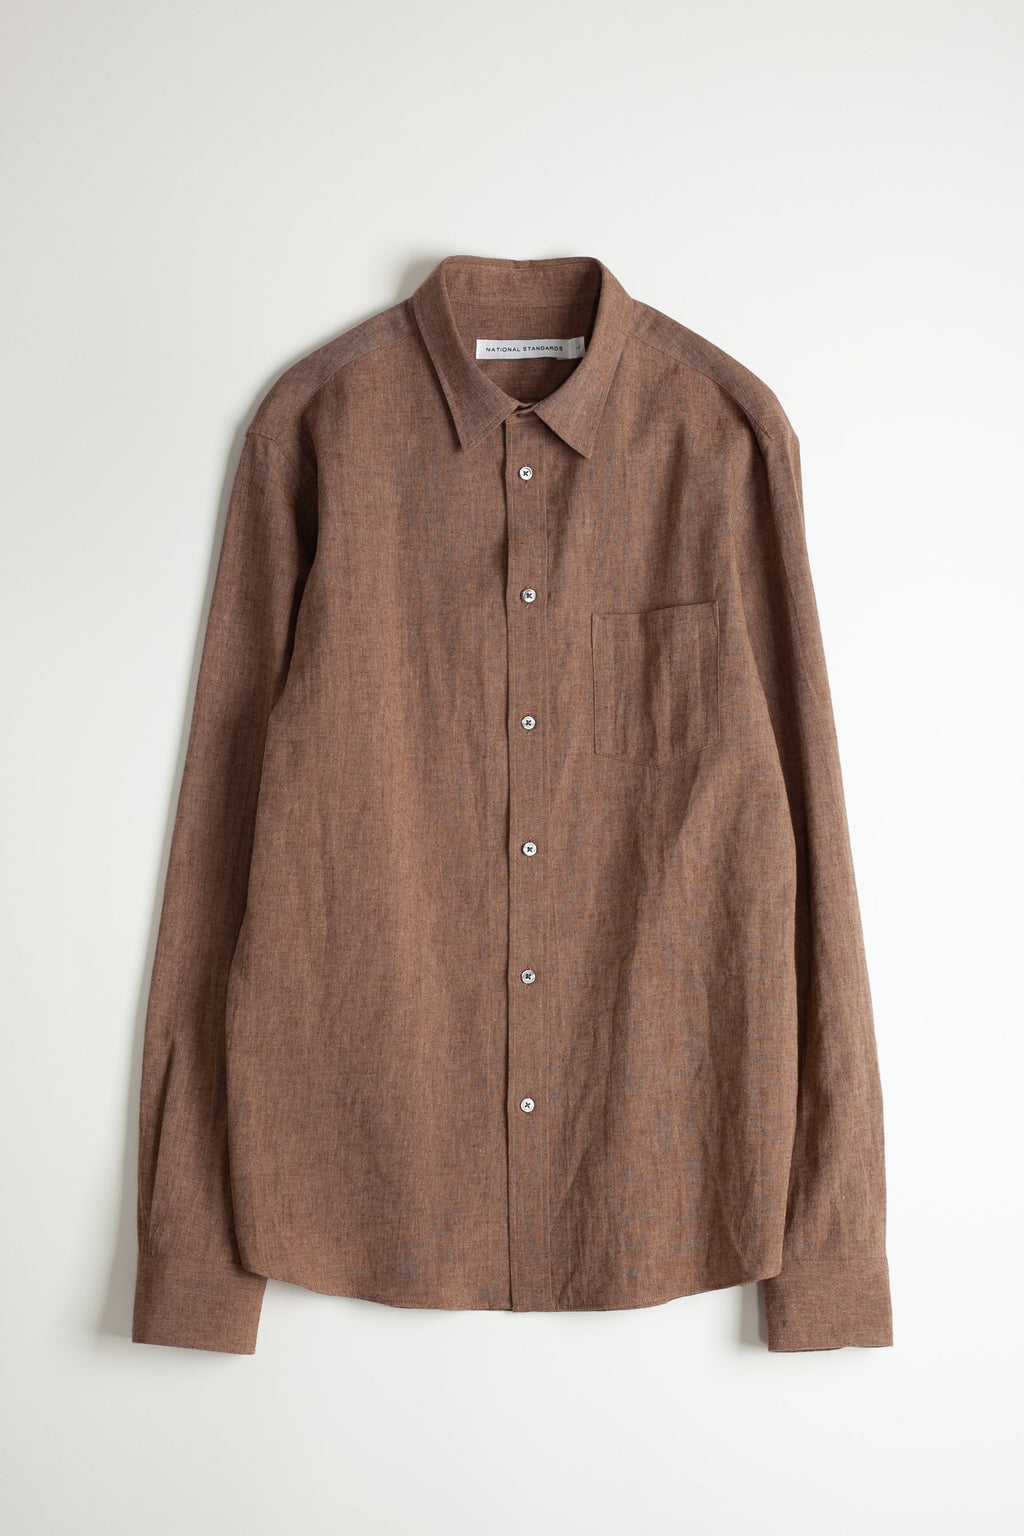 Japanese Euro Linen in Brown 06